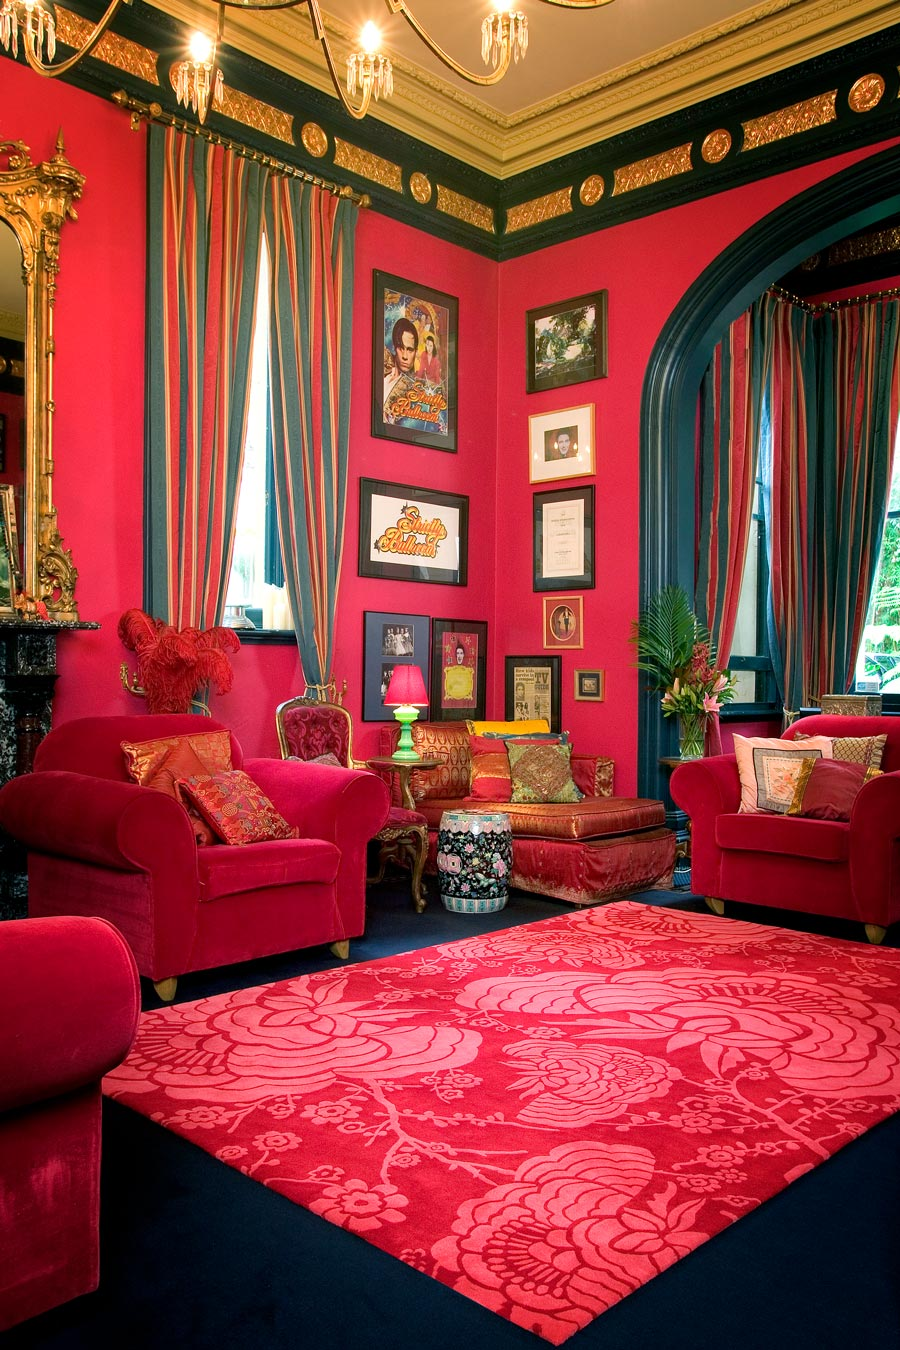 location living room shot of peony rug by catherine martin red floral pattern